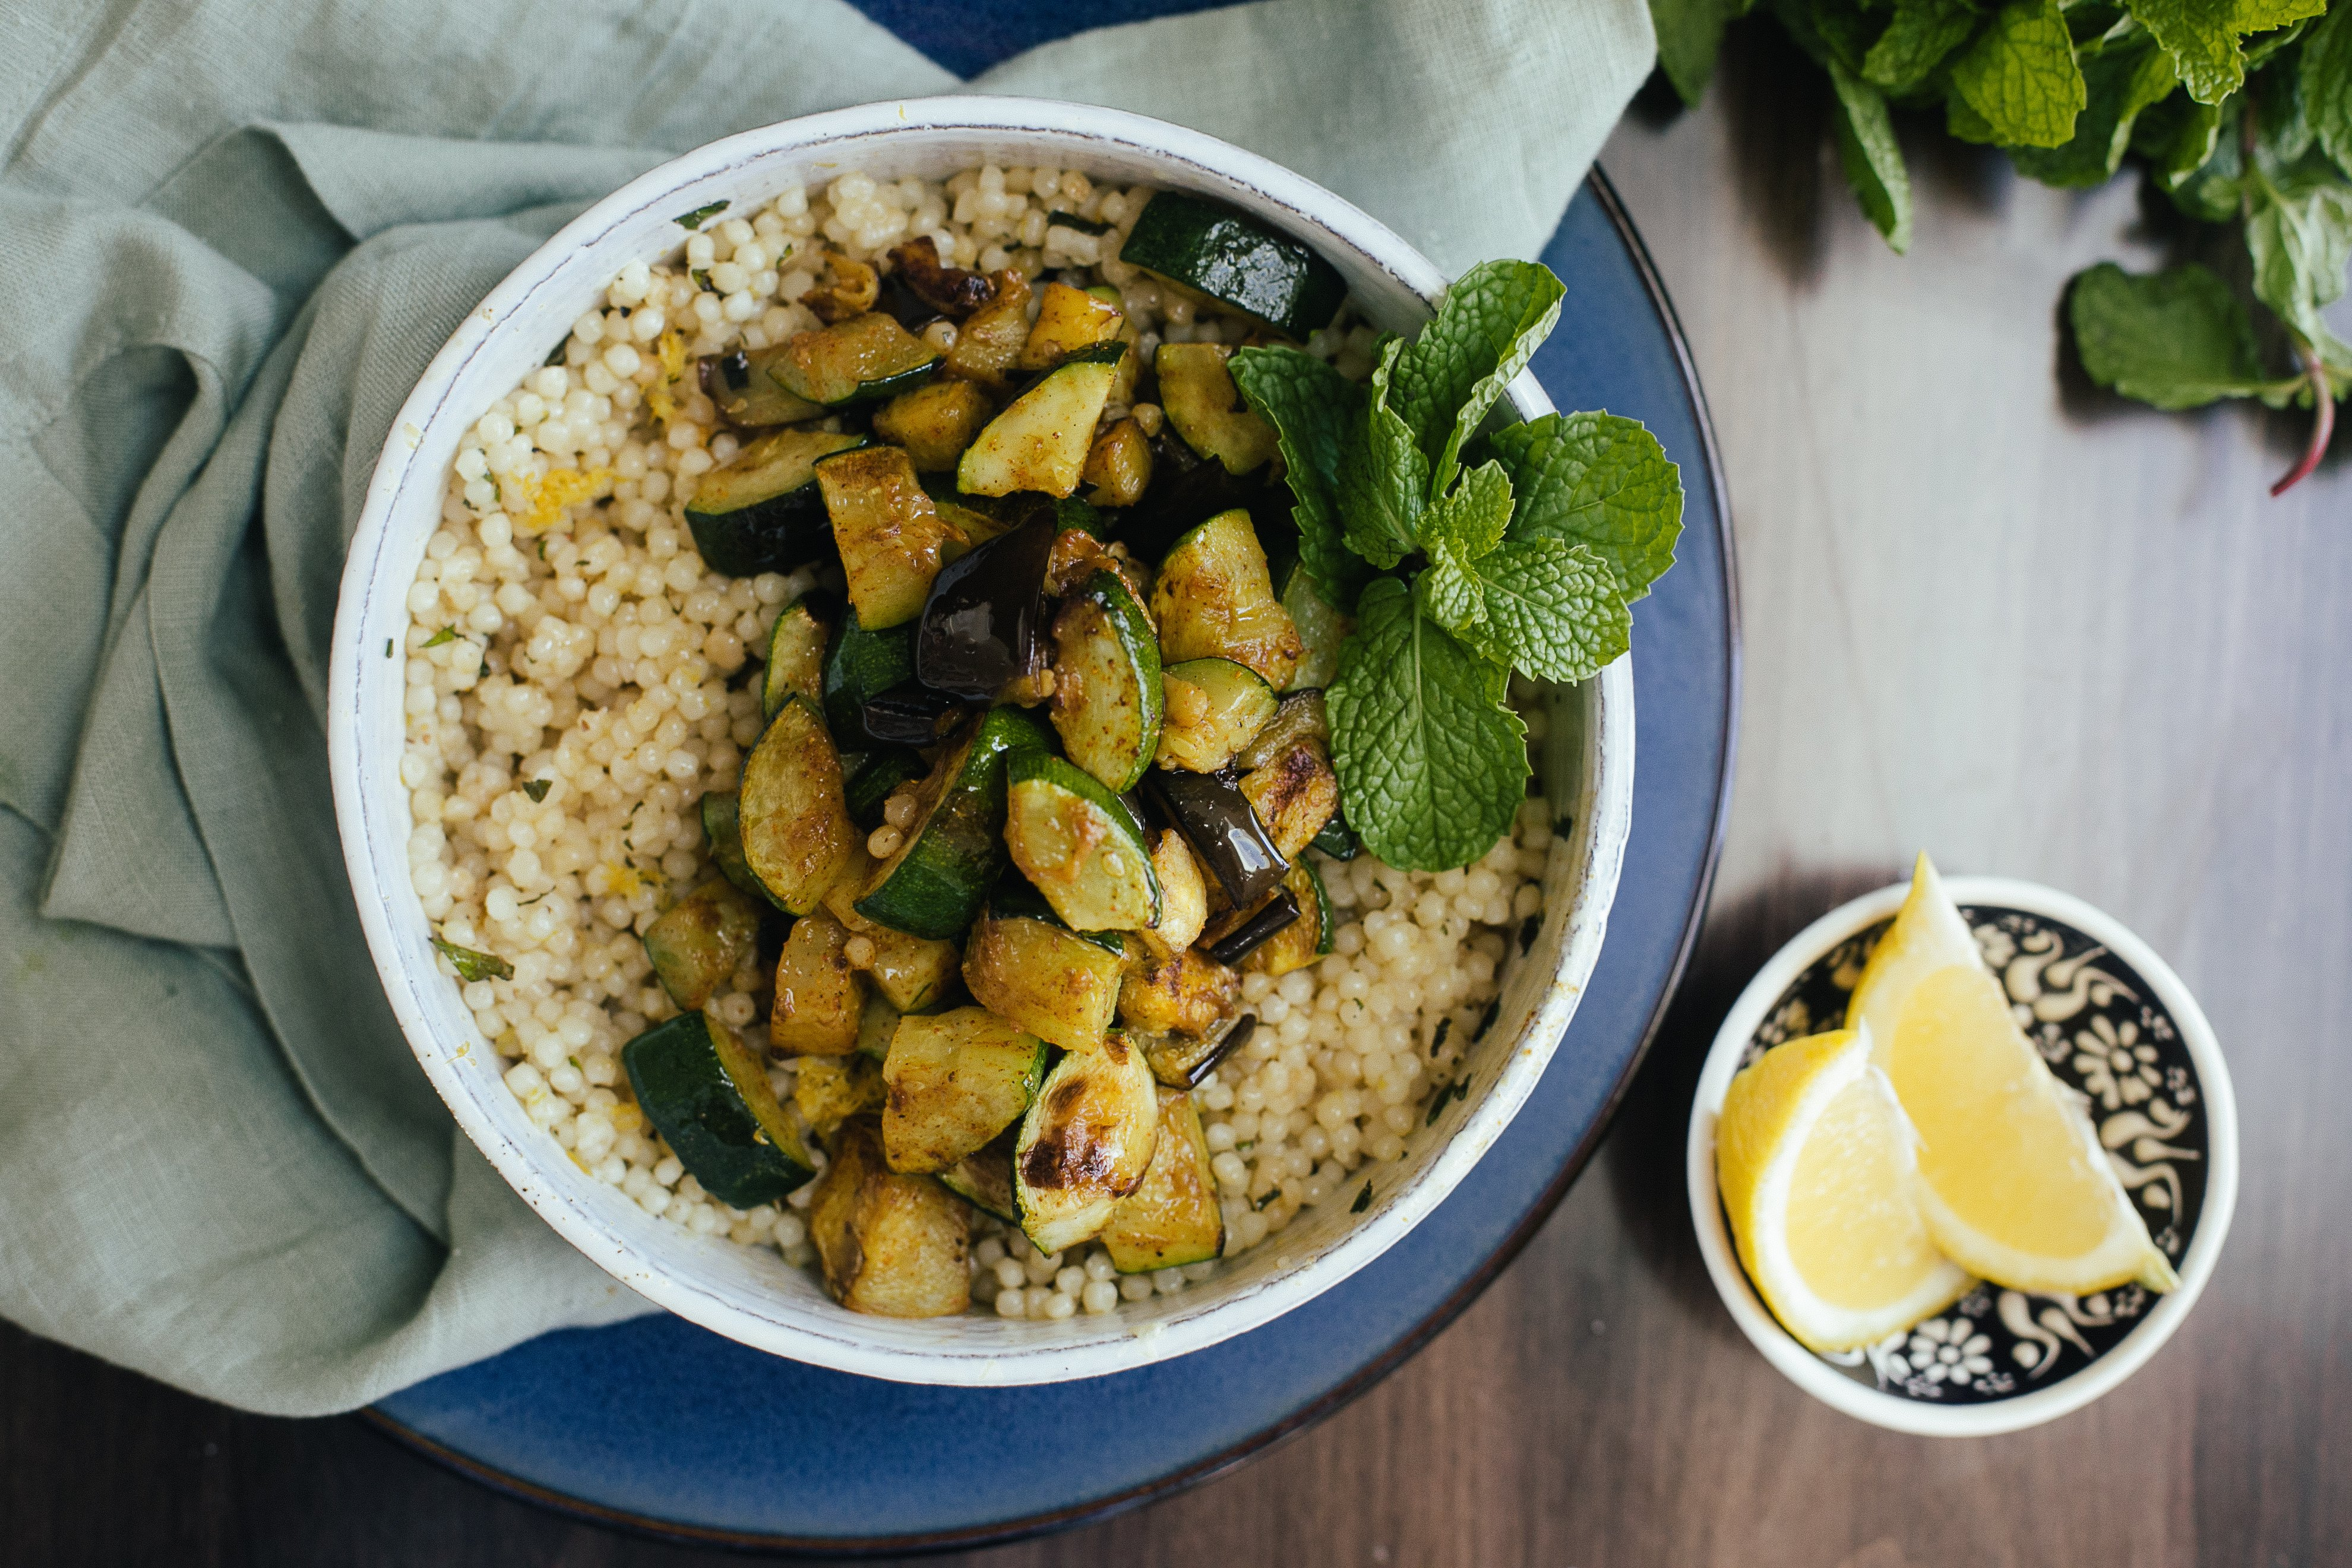 85c6a83dd365 As much as I love SPICY Indian inspired food, sometimes I like more simple,  subtle and fresh flavors. This cous cous is a perfect example of how a  little ...